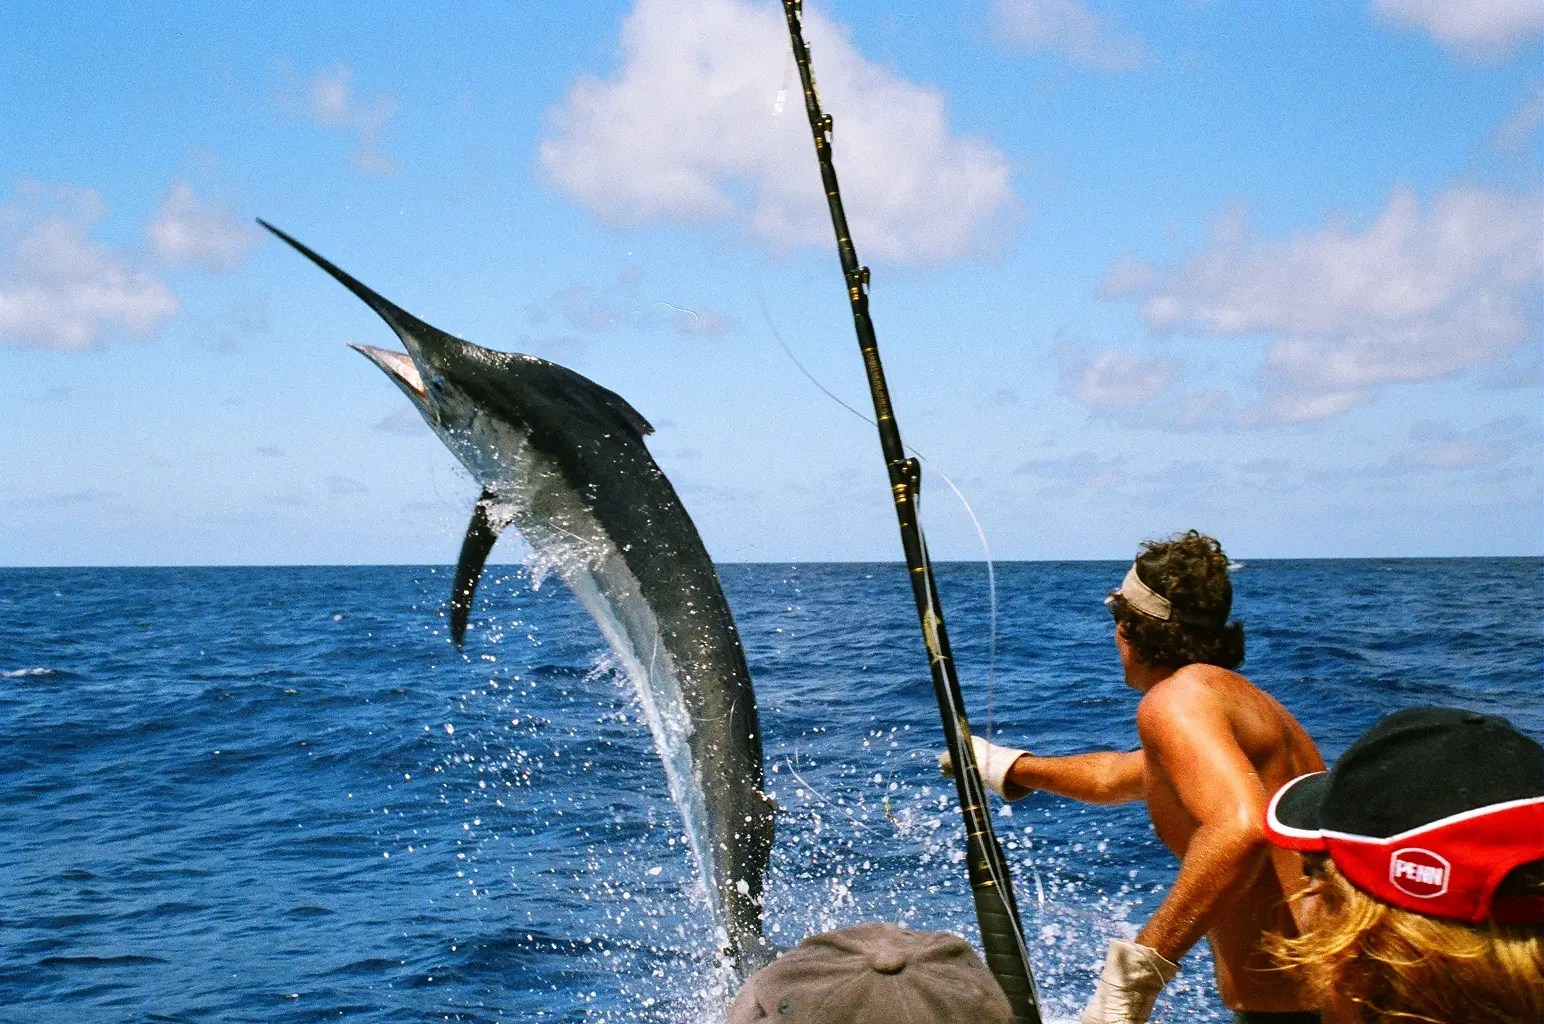 New Zealand Fishing Calendar Best Of New Zealand Fly Fishing Tampa Fishing Charters And Guides Offshore Fishing Tampa